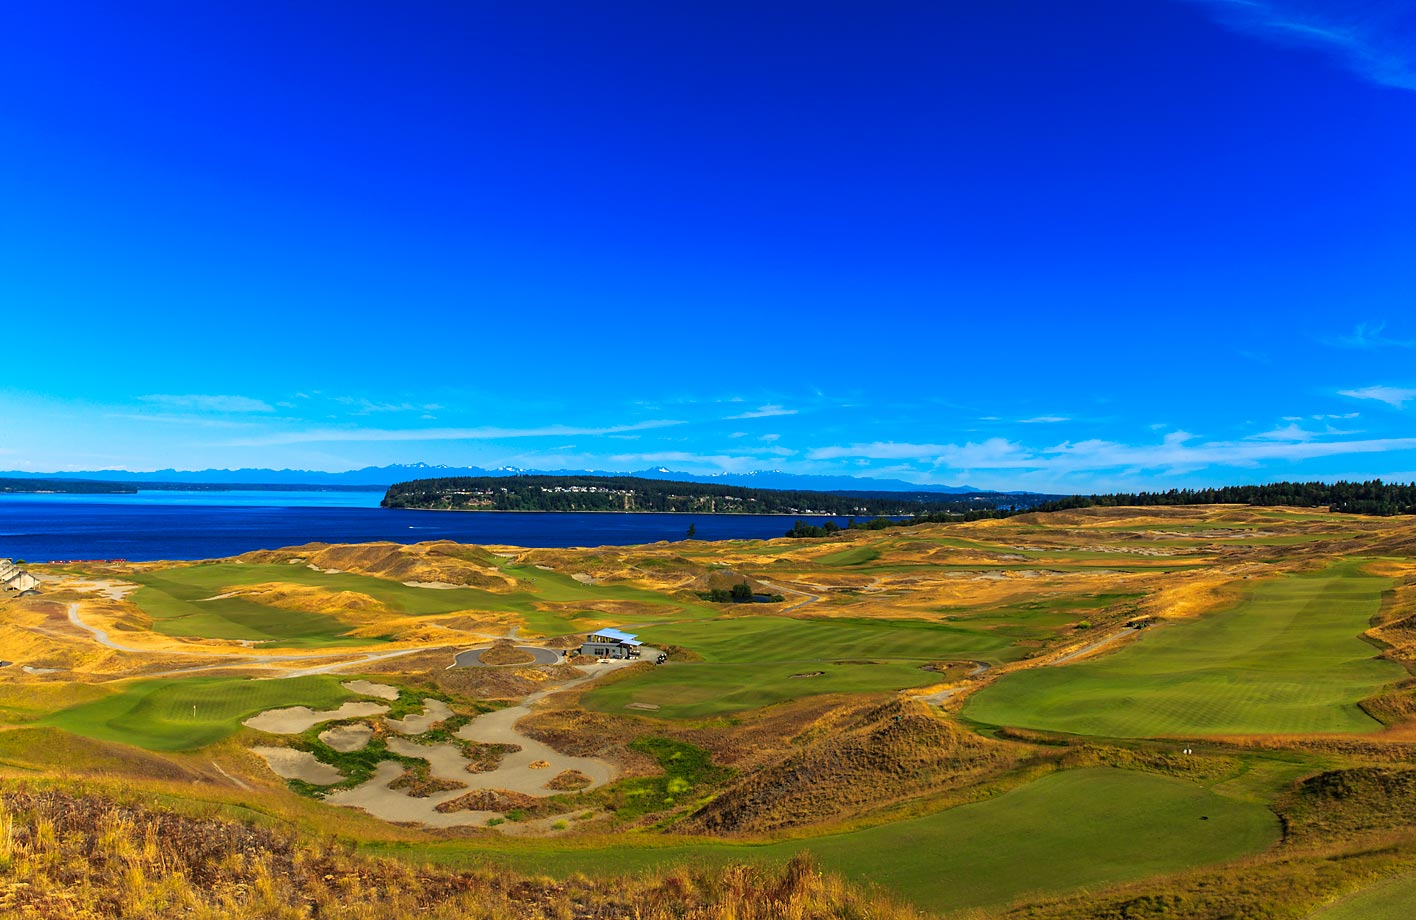 Designed by Robert Trent Jones, Jr., Chambers Bay overlooks the Puget Sound near Tacoma in University Place, Wash.